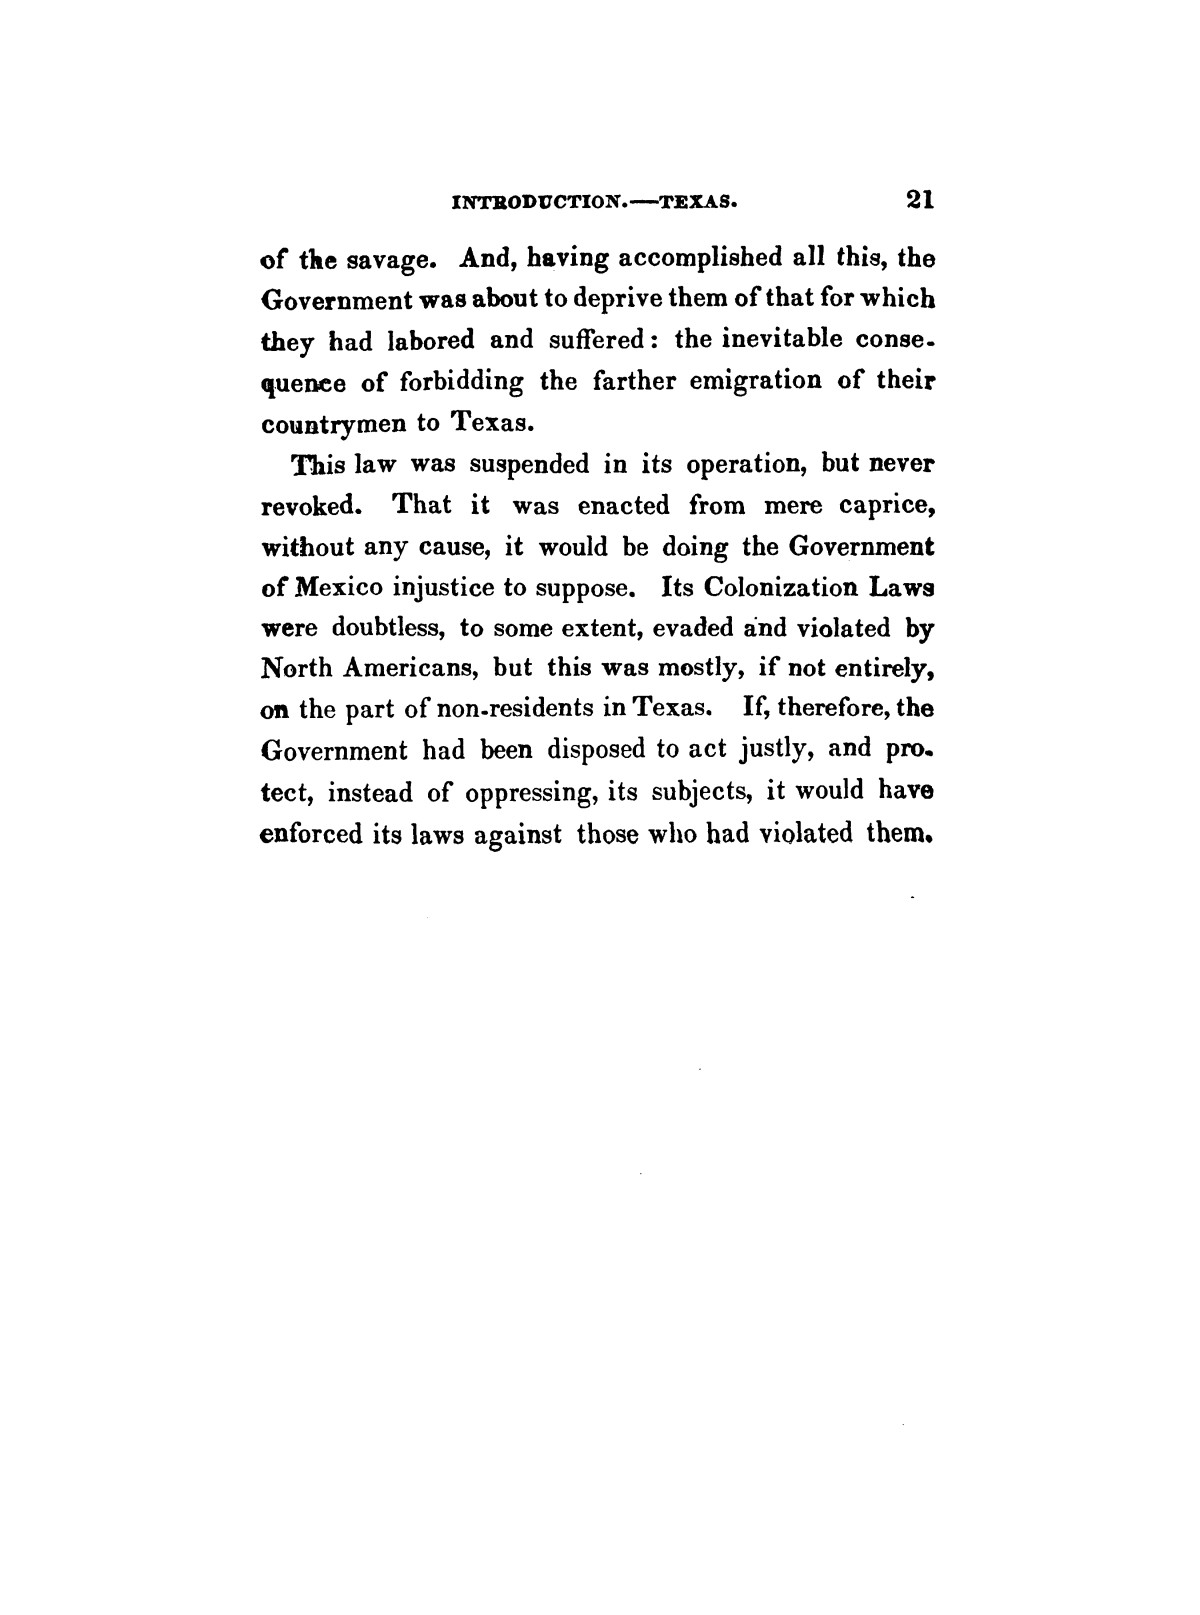 History of the revolution in Texas, particularly of the war of 1835 & '36; together with the latest geographical, topographical, and statistical accounts of the country, from the most authentic sources. Also, an appendix. By the Rev. C. Newell.                                                                                                      [Sequence #]: 33 of 227